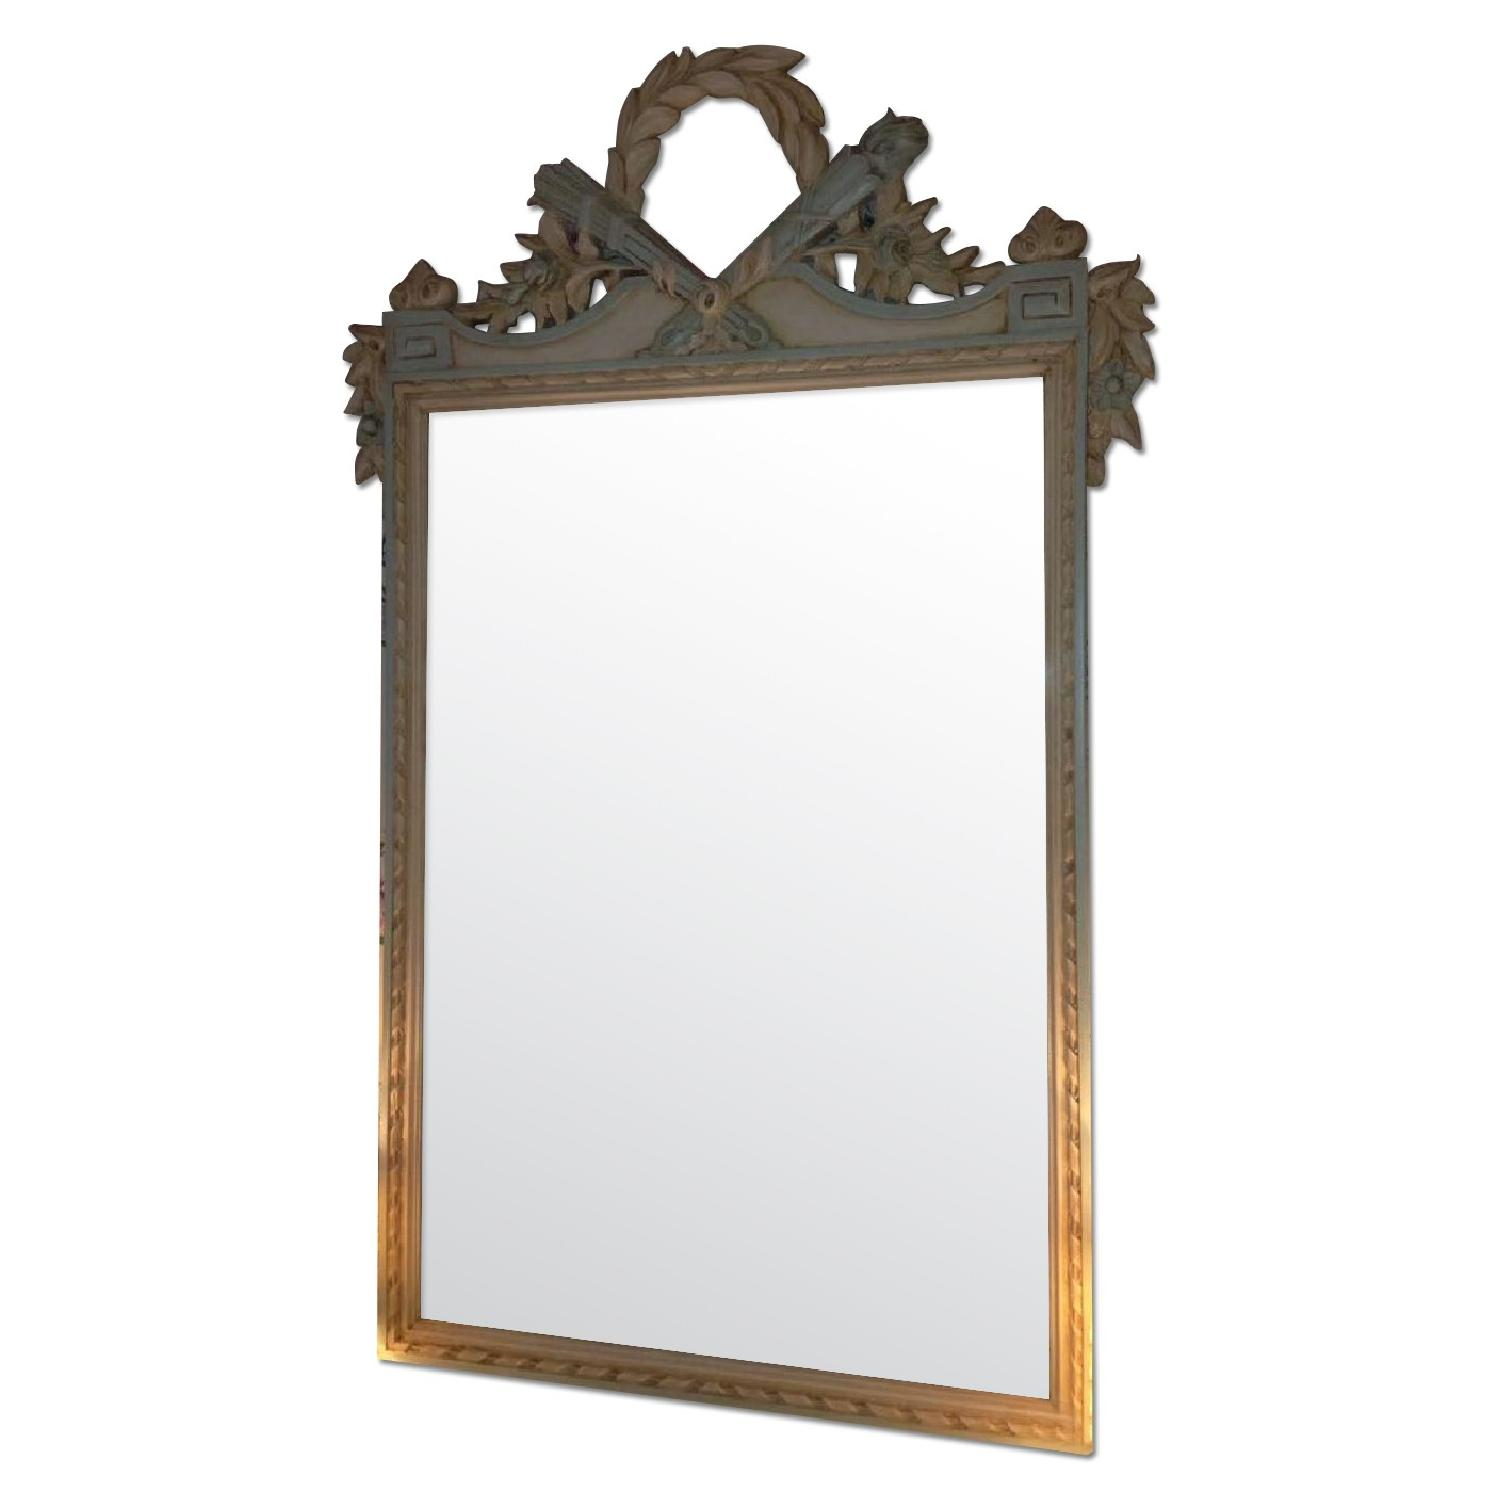 Julia Gray French Mirror w/ Blue Accents - image-0